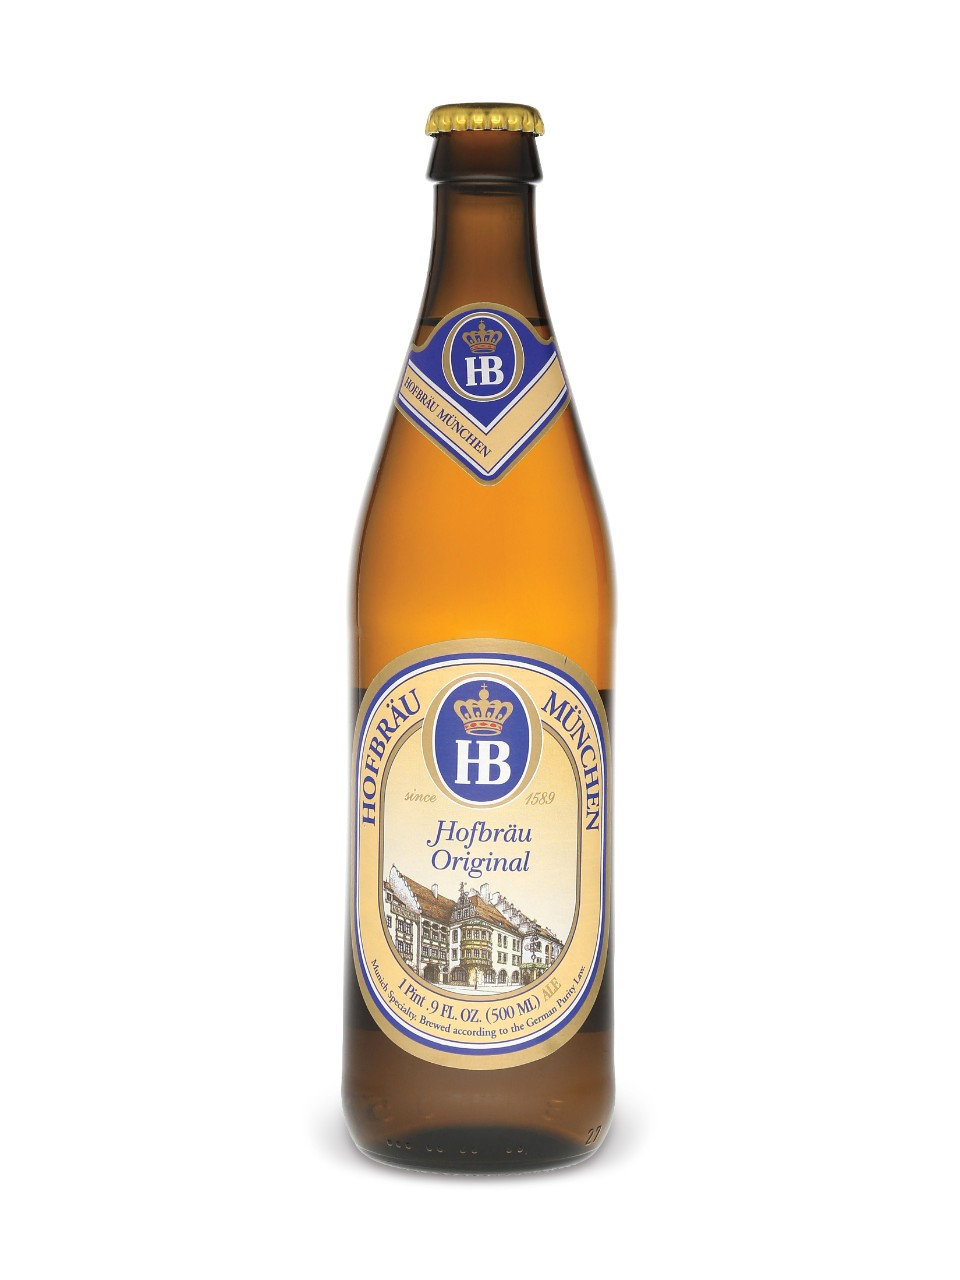 Hofbrau Original Lager from LCBO